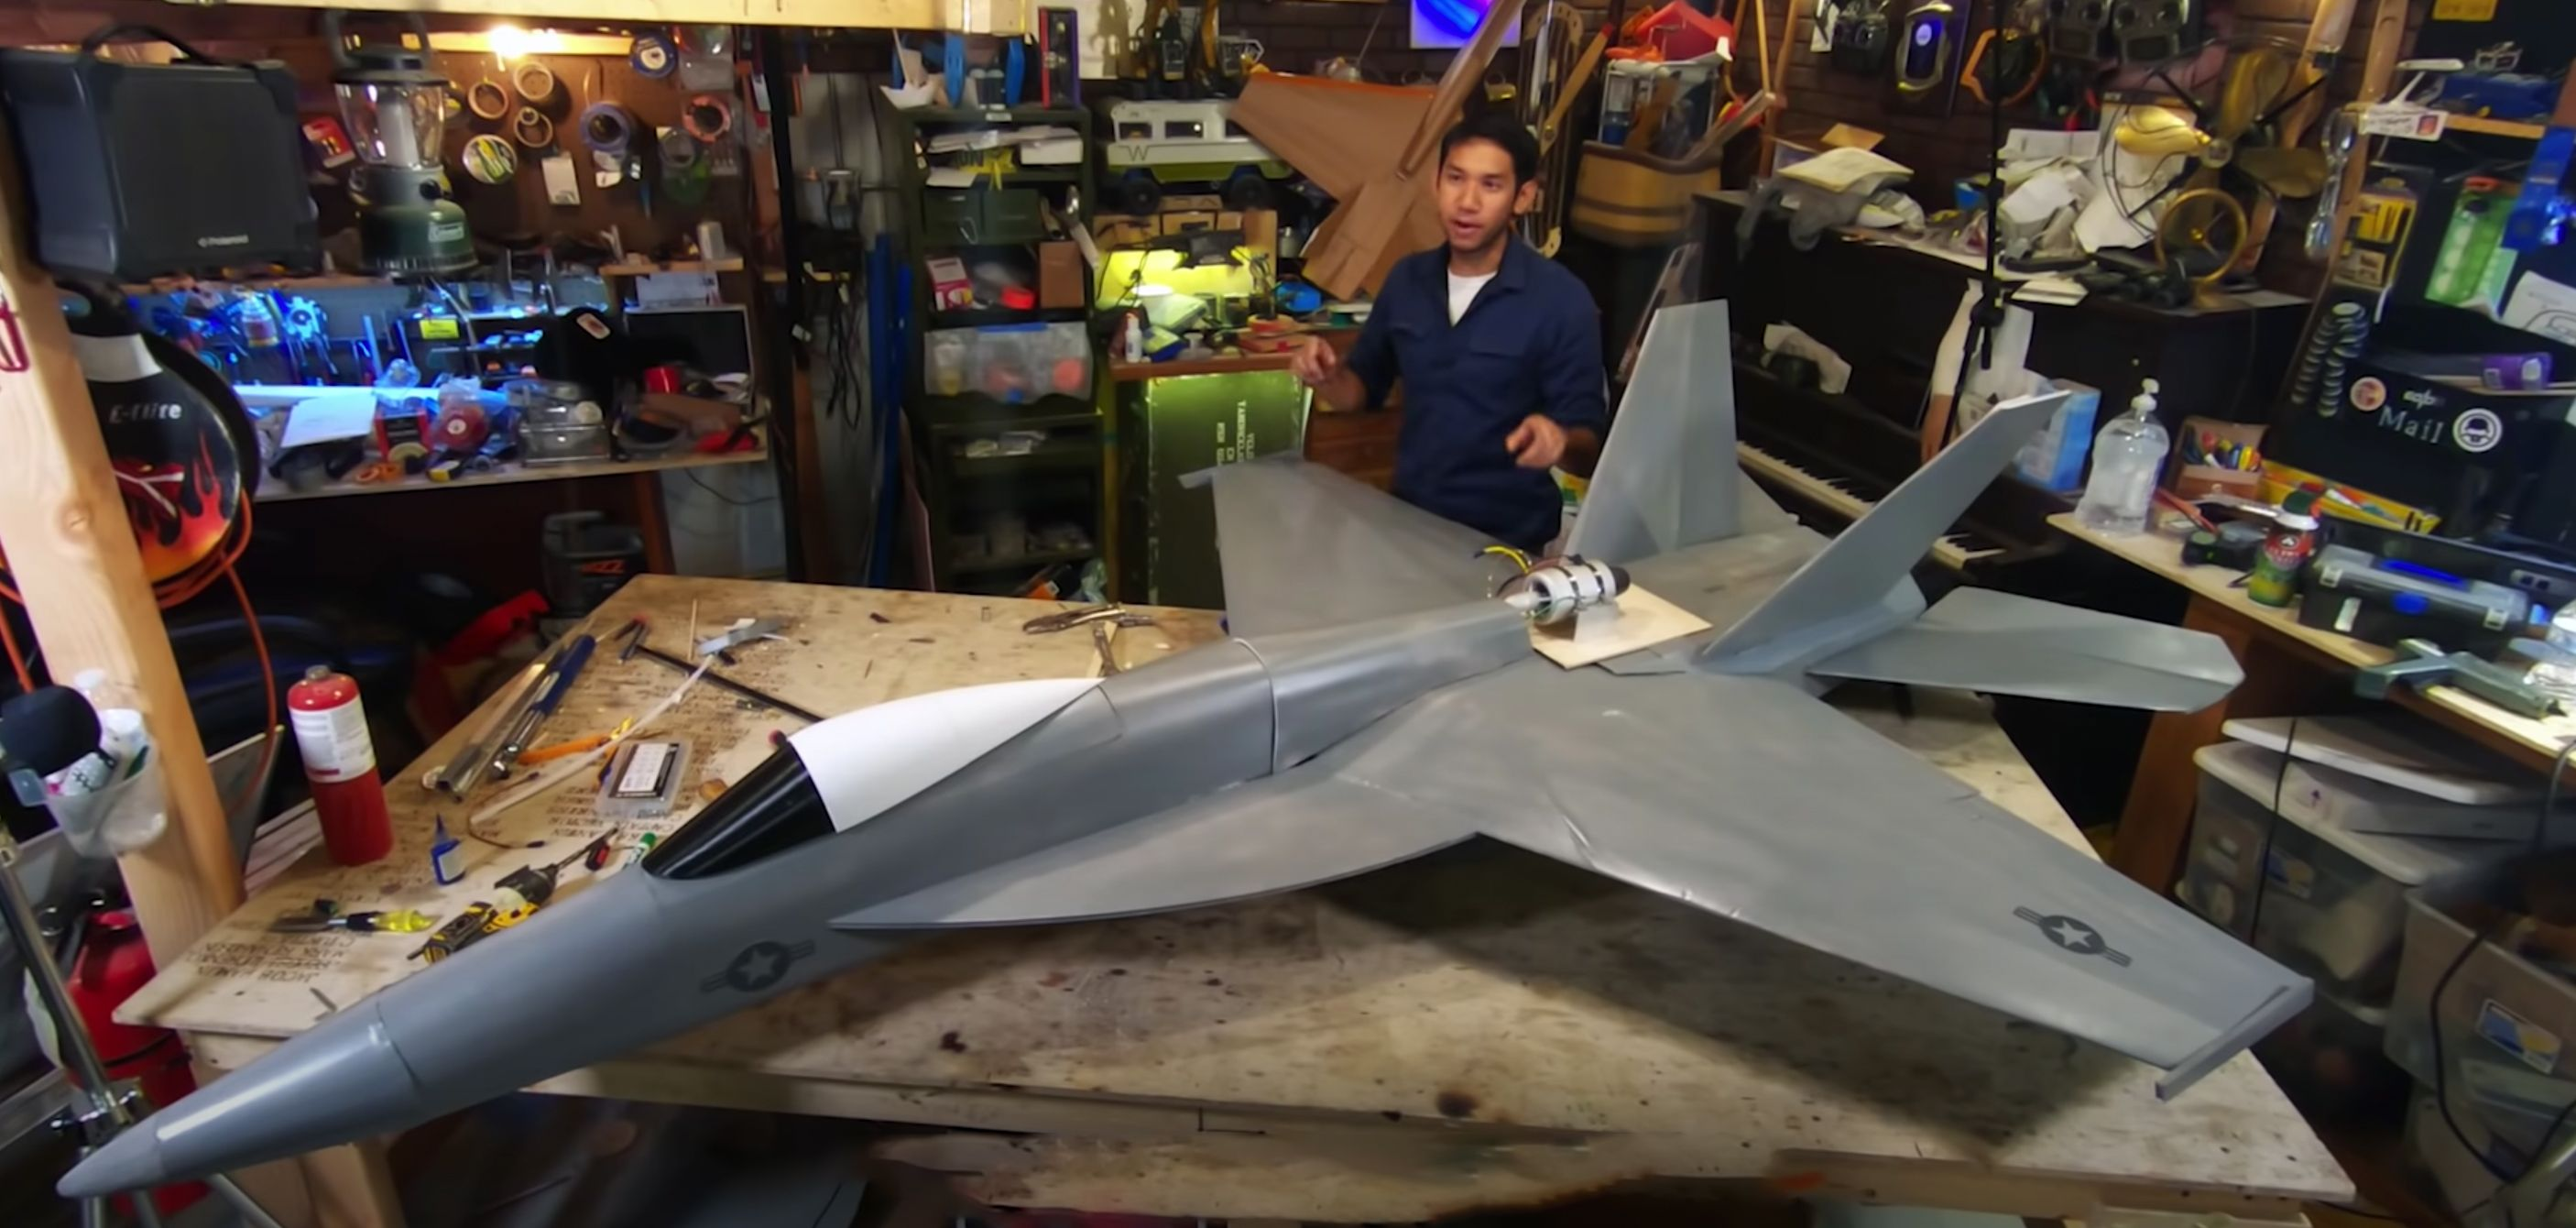 Watch This Guy Build a Giant Foam F/A-18 ... With a Real Jet Turbine Engine